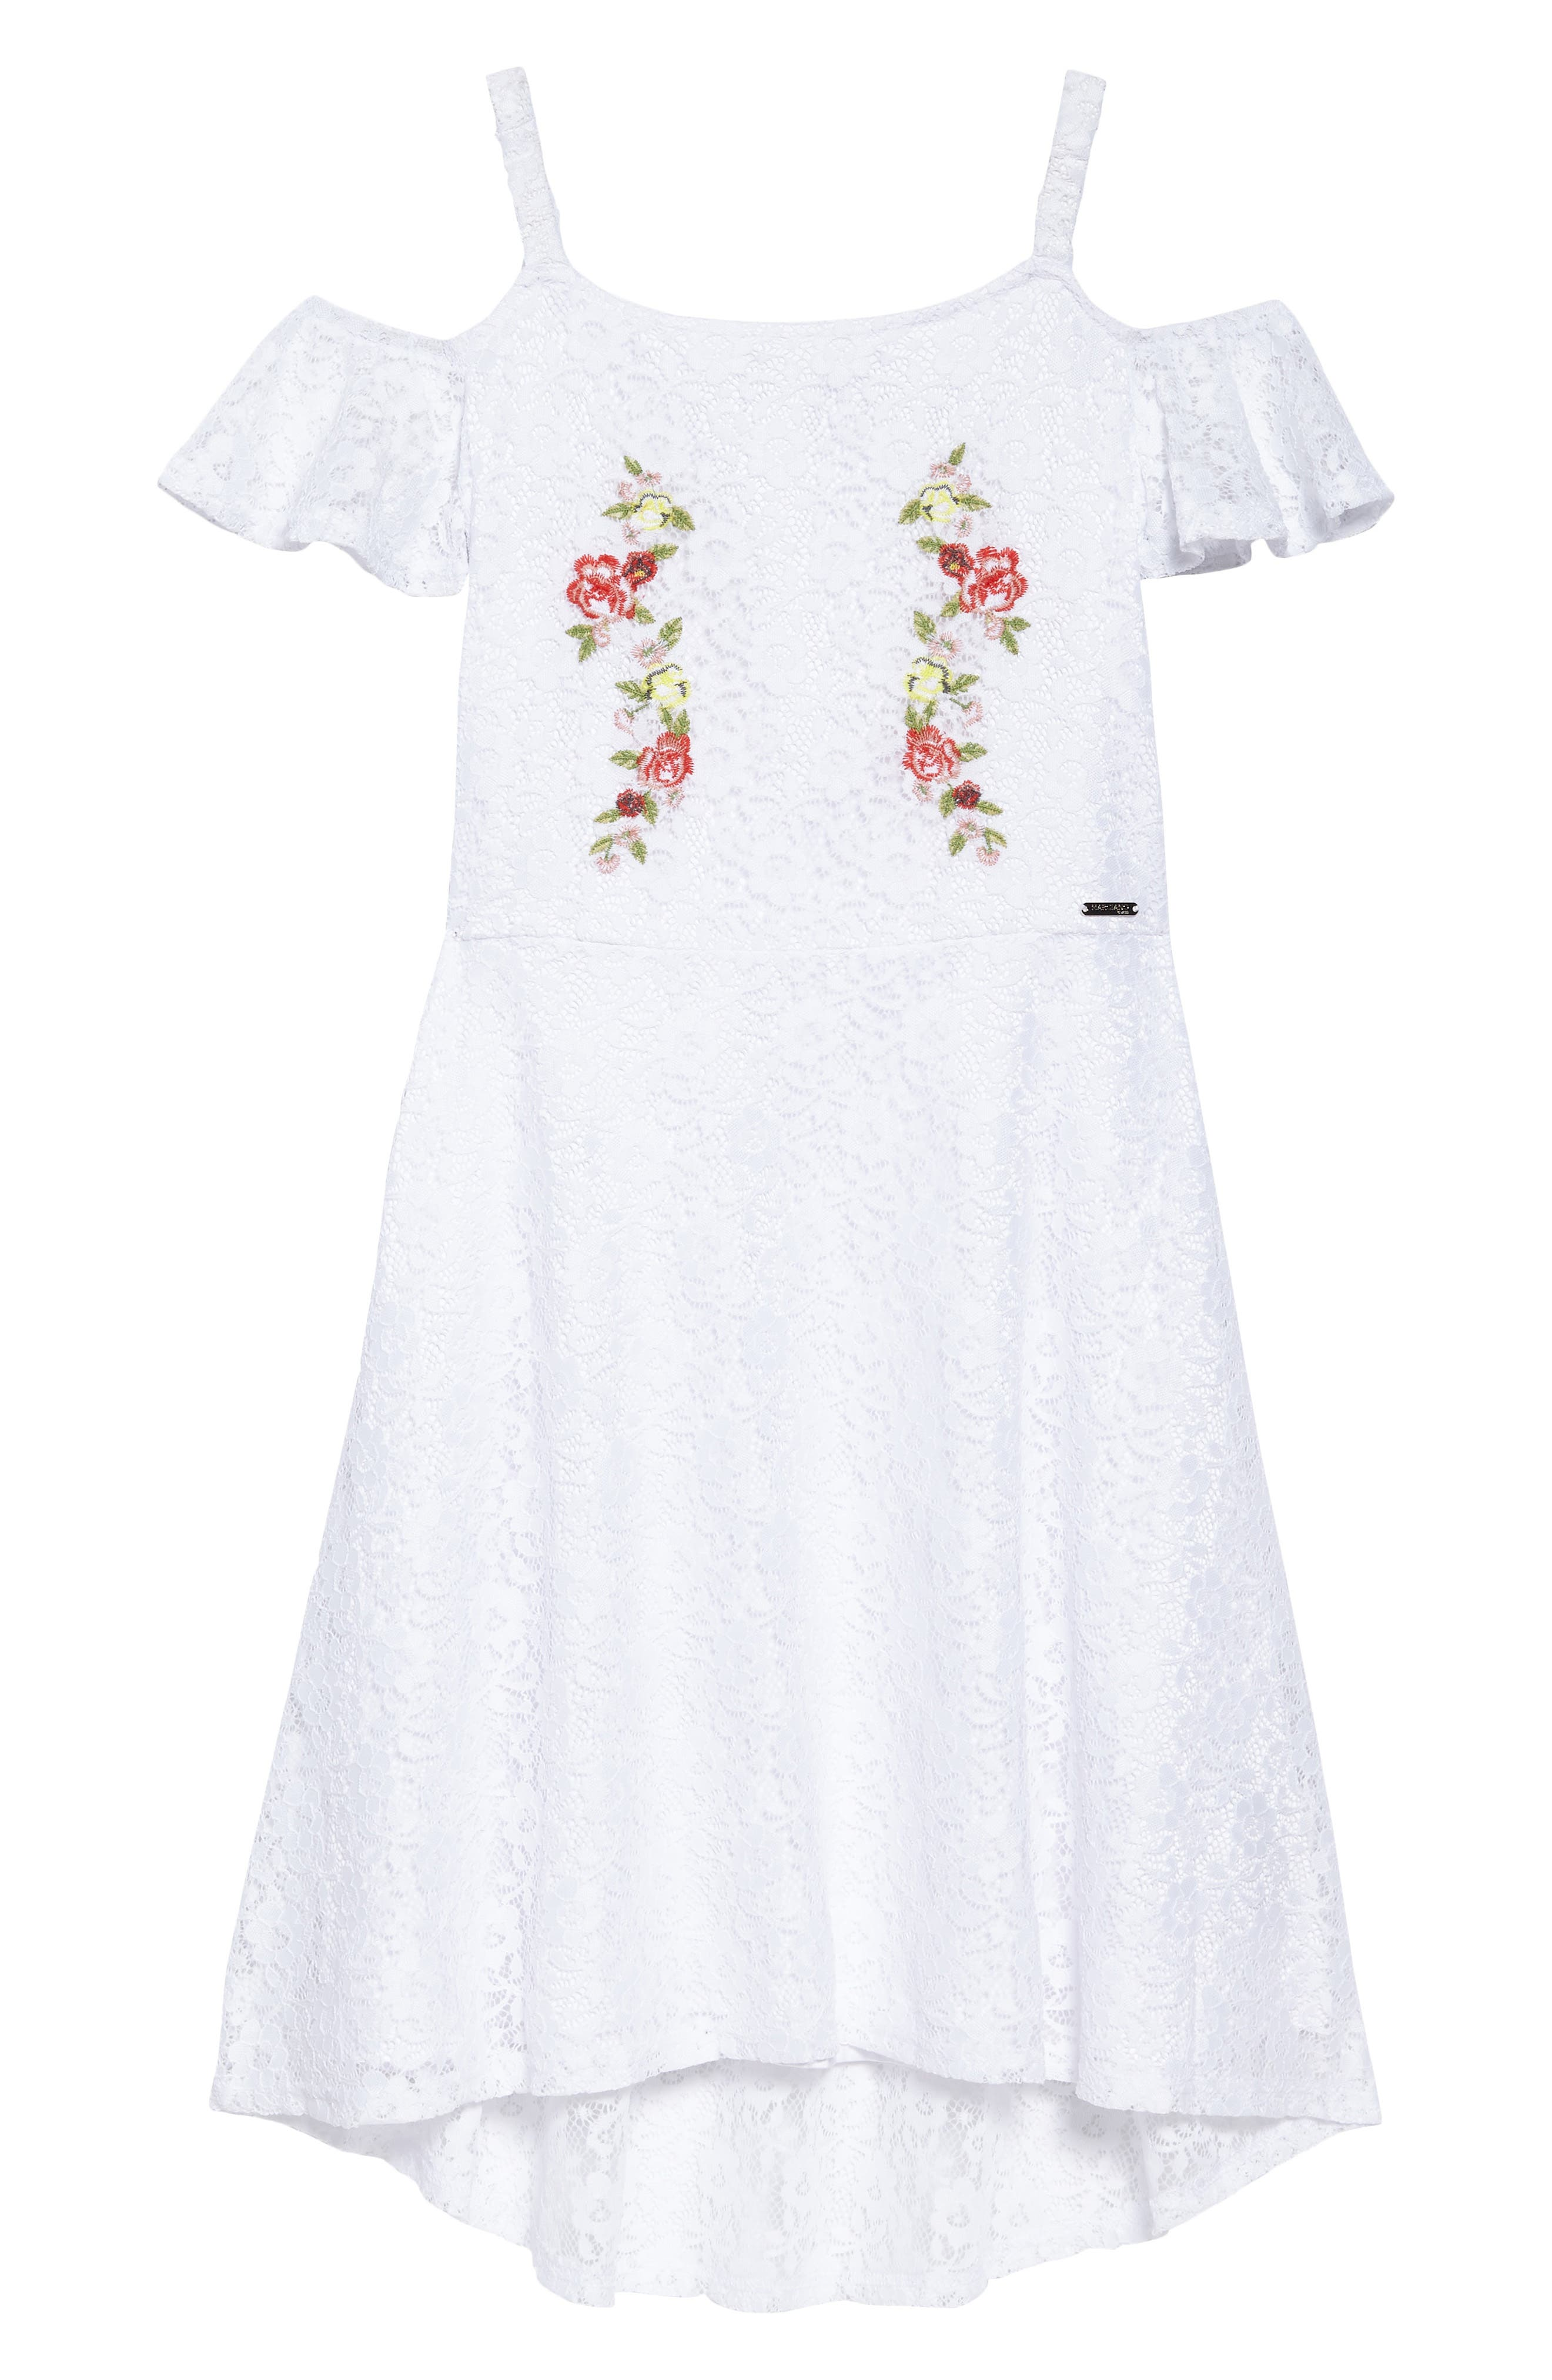 MARCIANO Embroidered Lace Cold Shoulder Dress, Main, color, 118